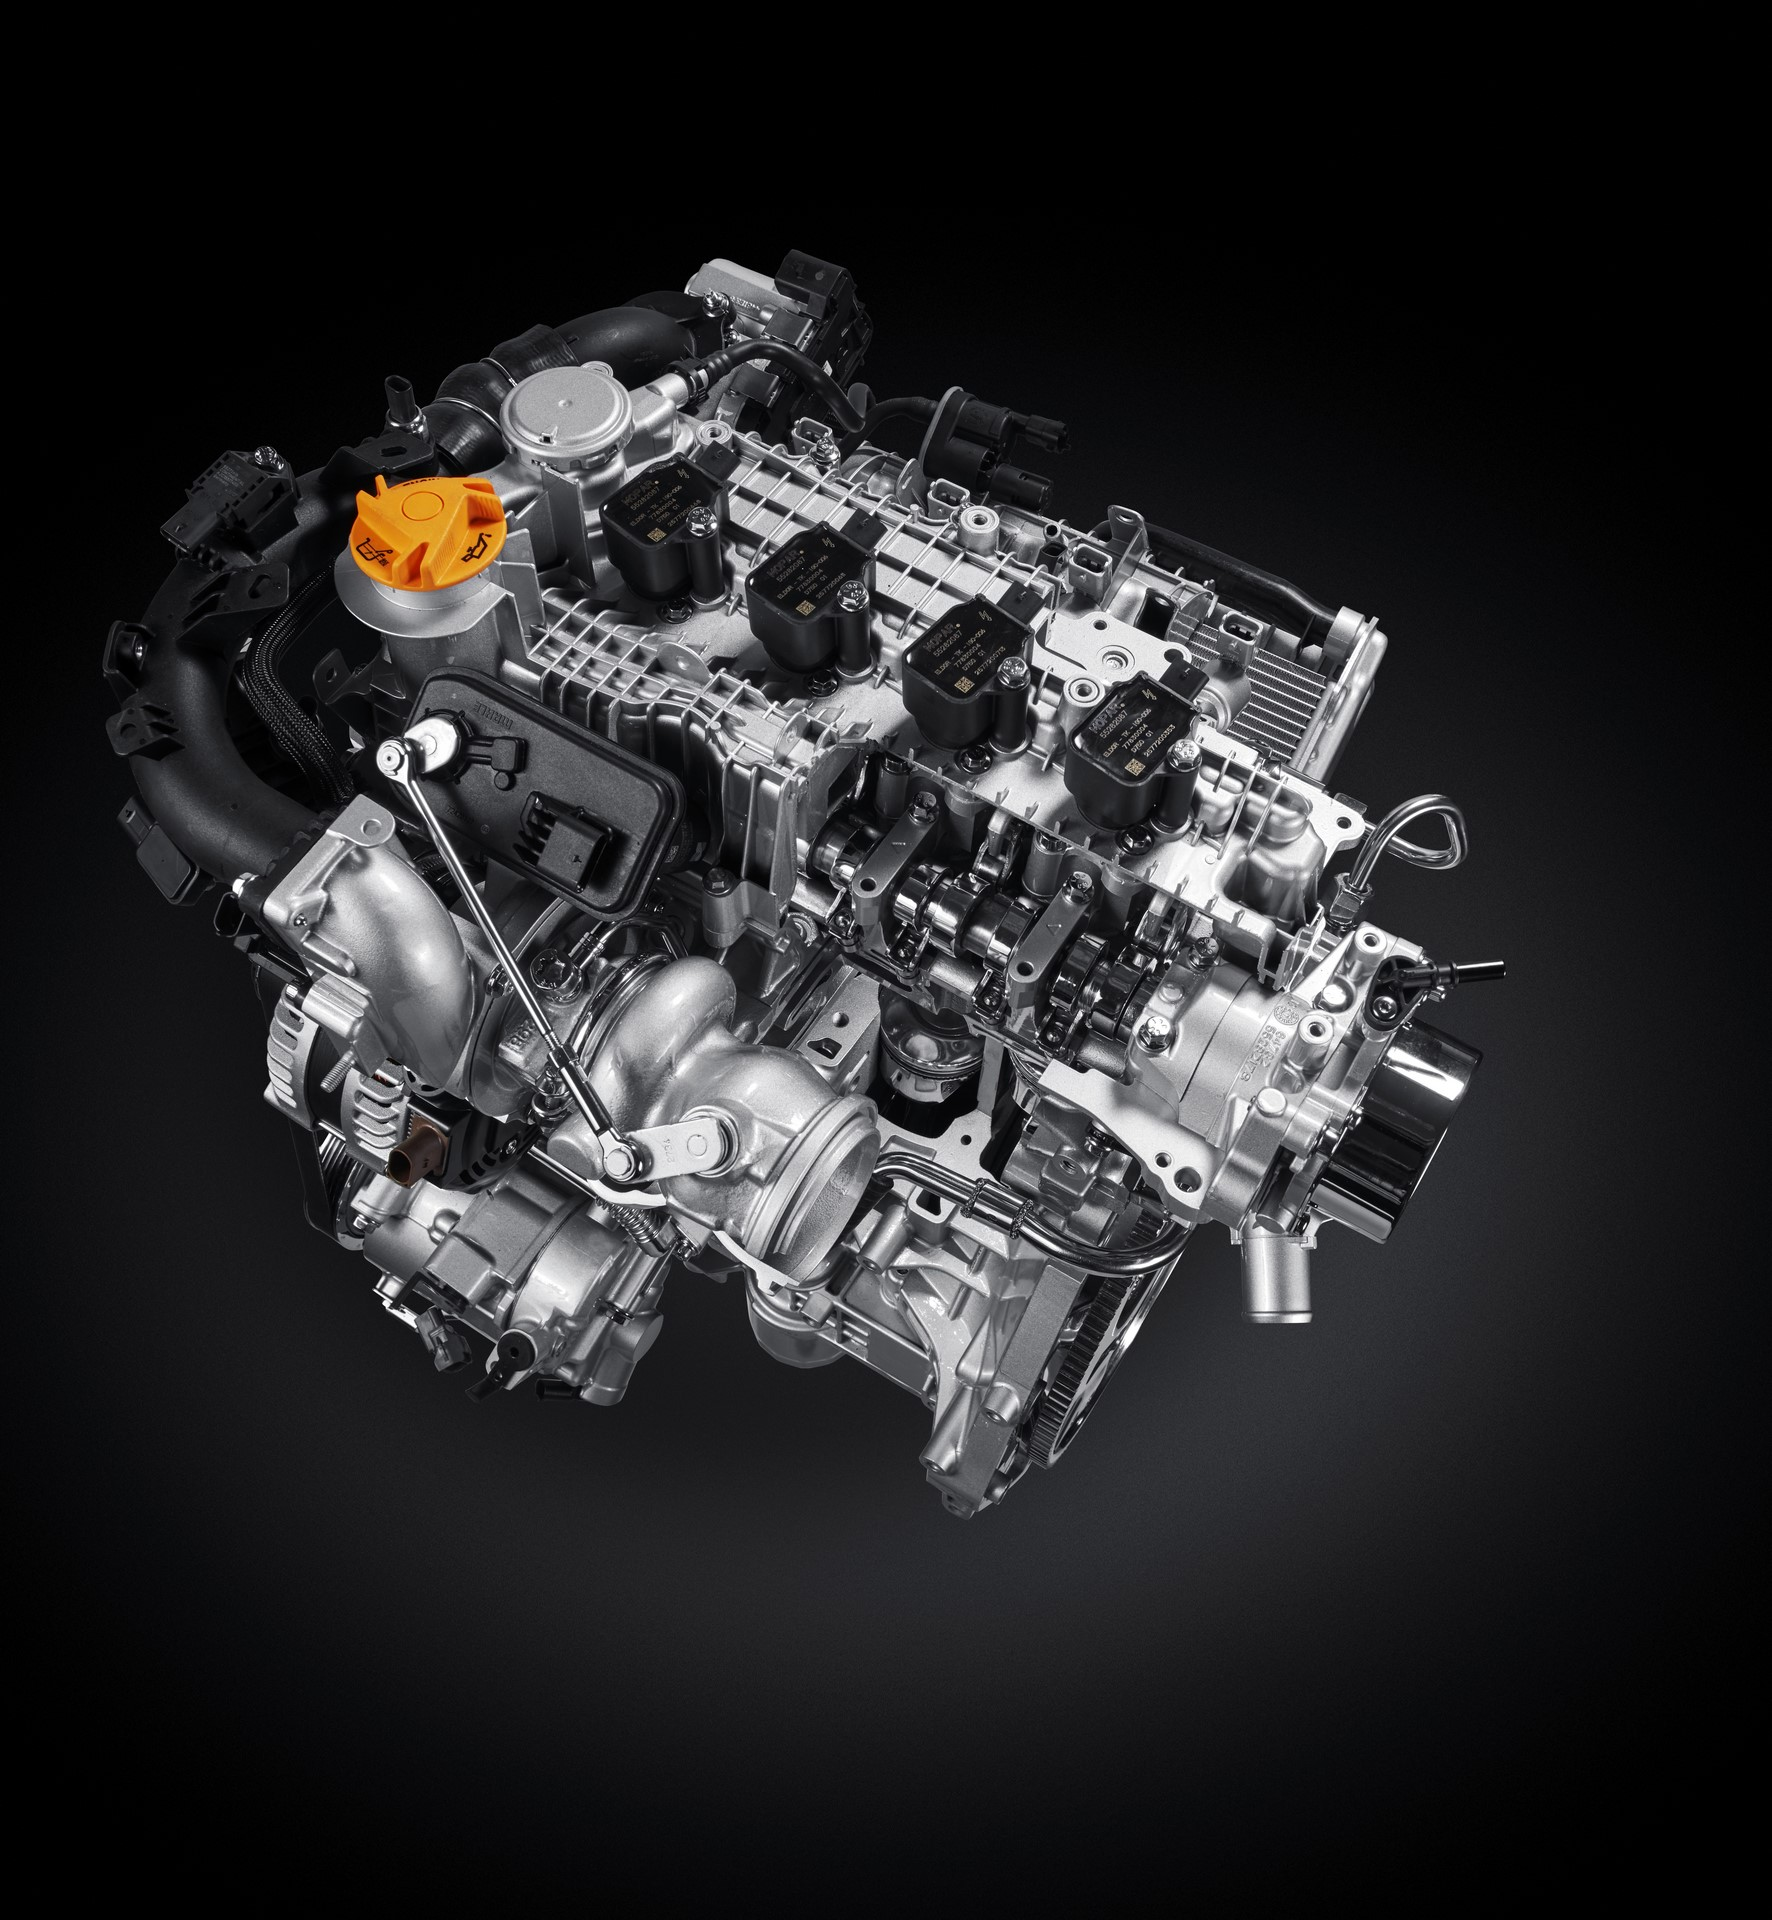 New-13L-Turbo-4-cylinder-150HP_18